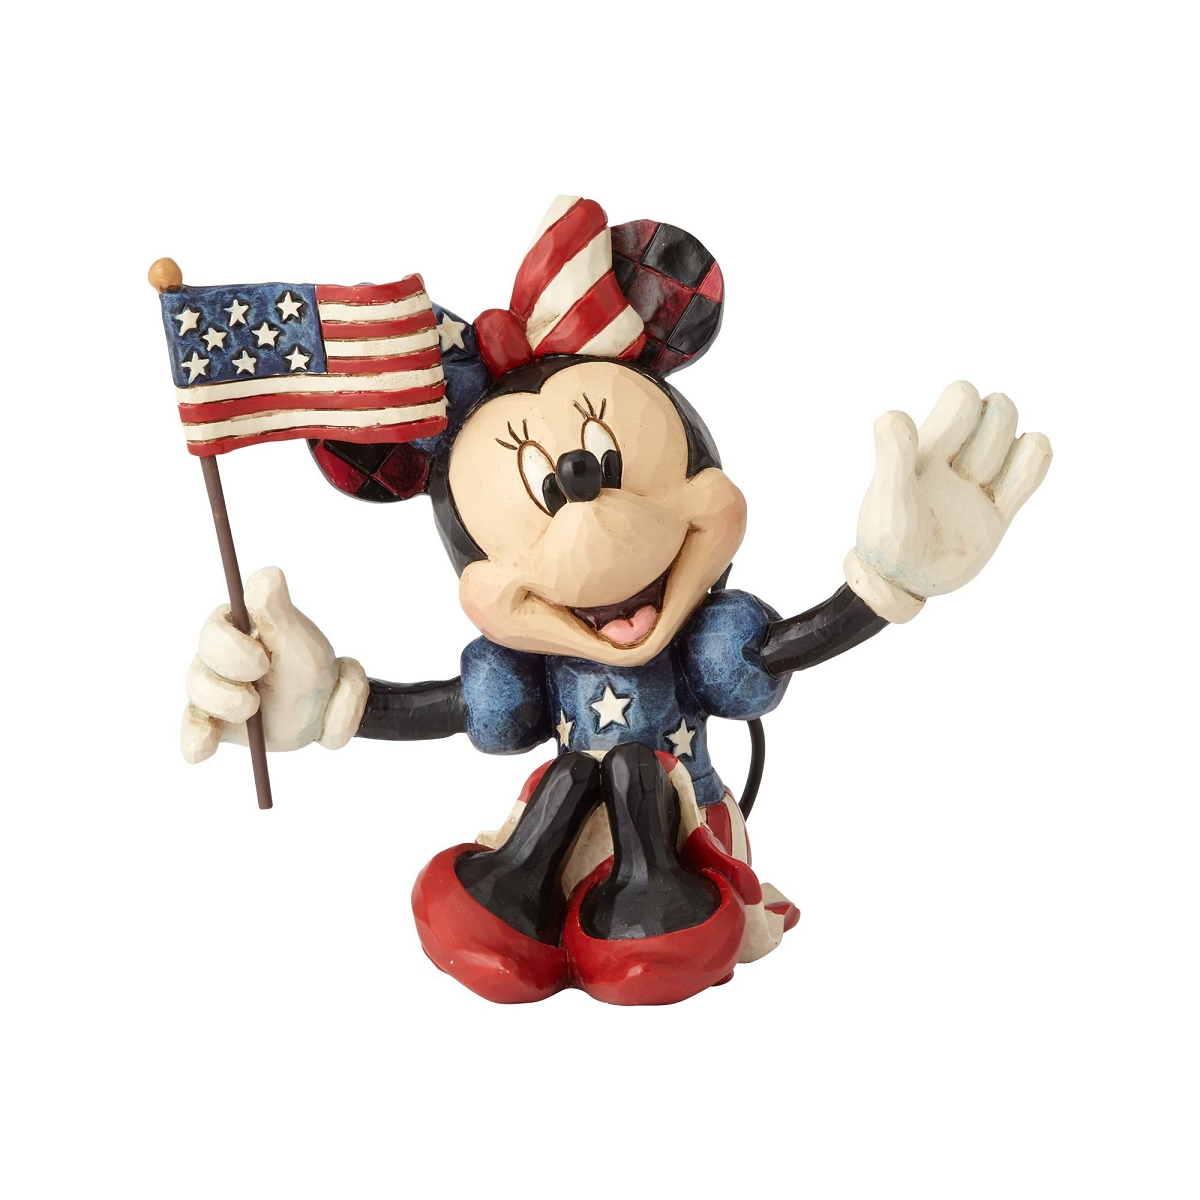 Patriotic Minnie Mouse Figurine - Jim Shore Disney Traditions